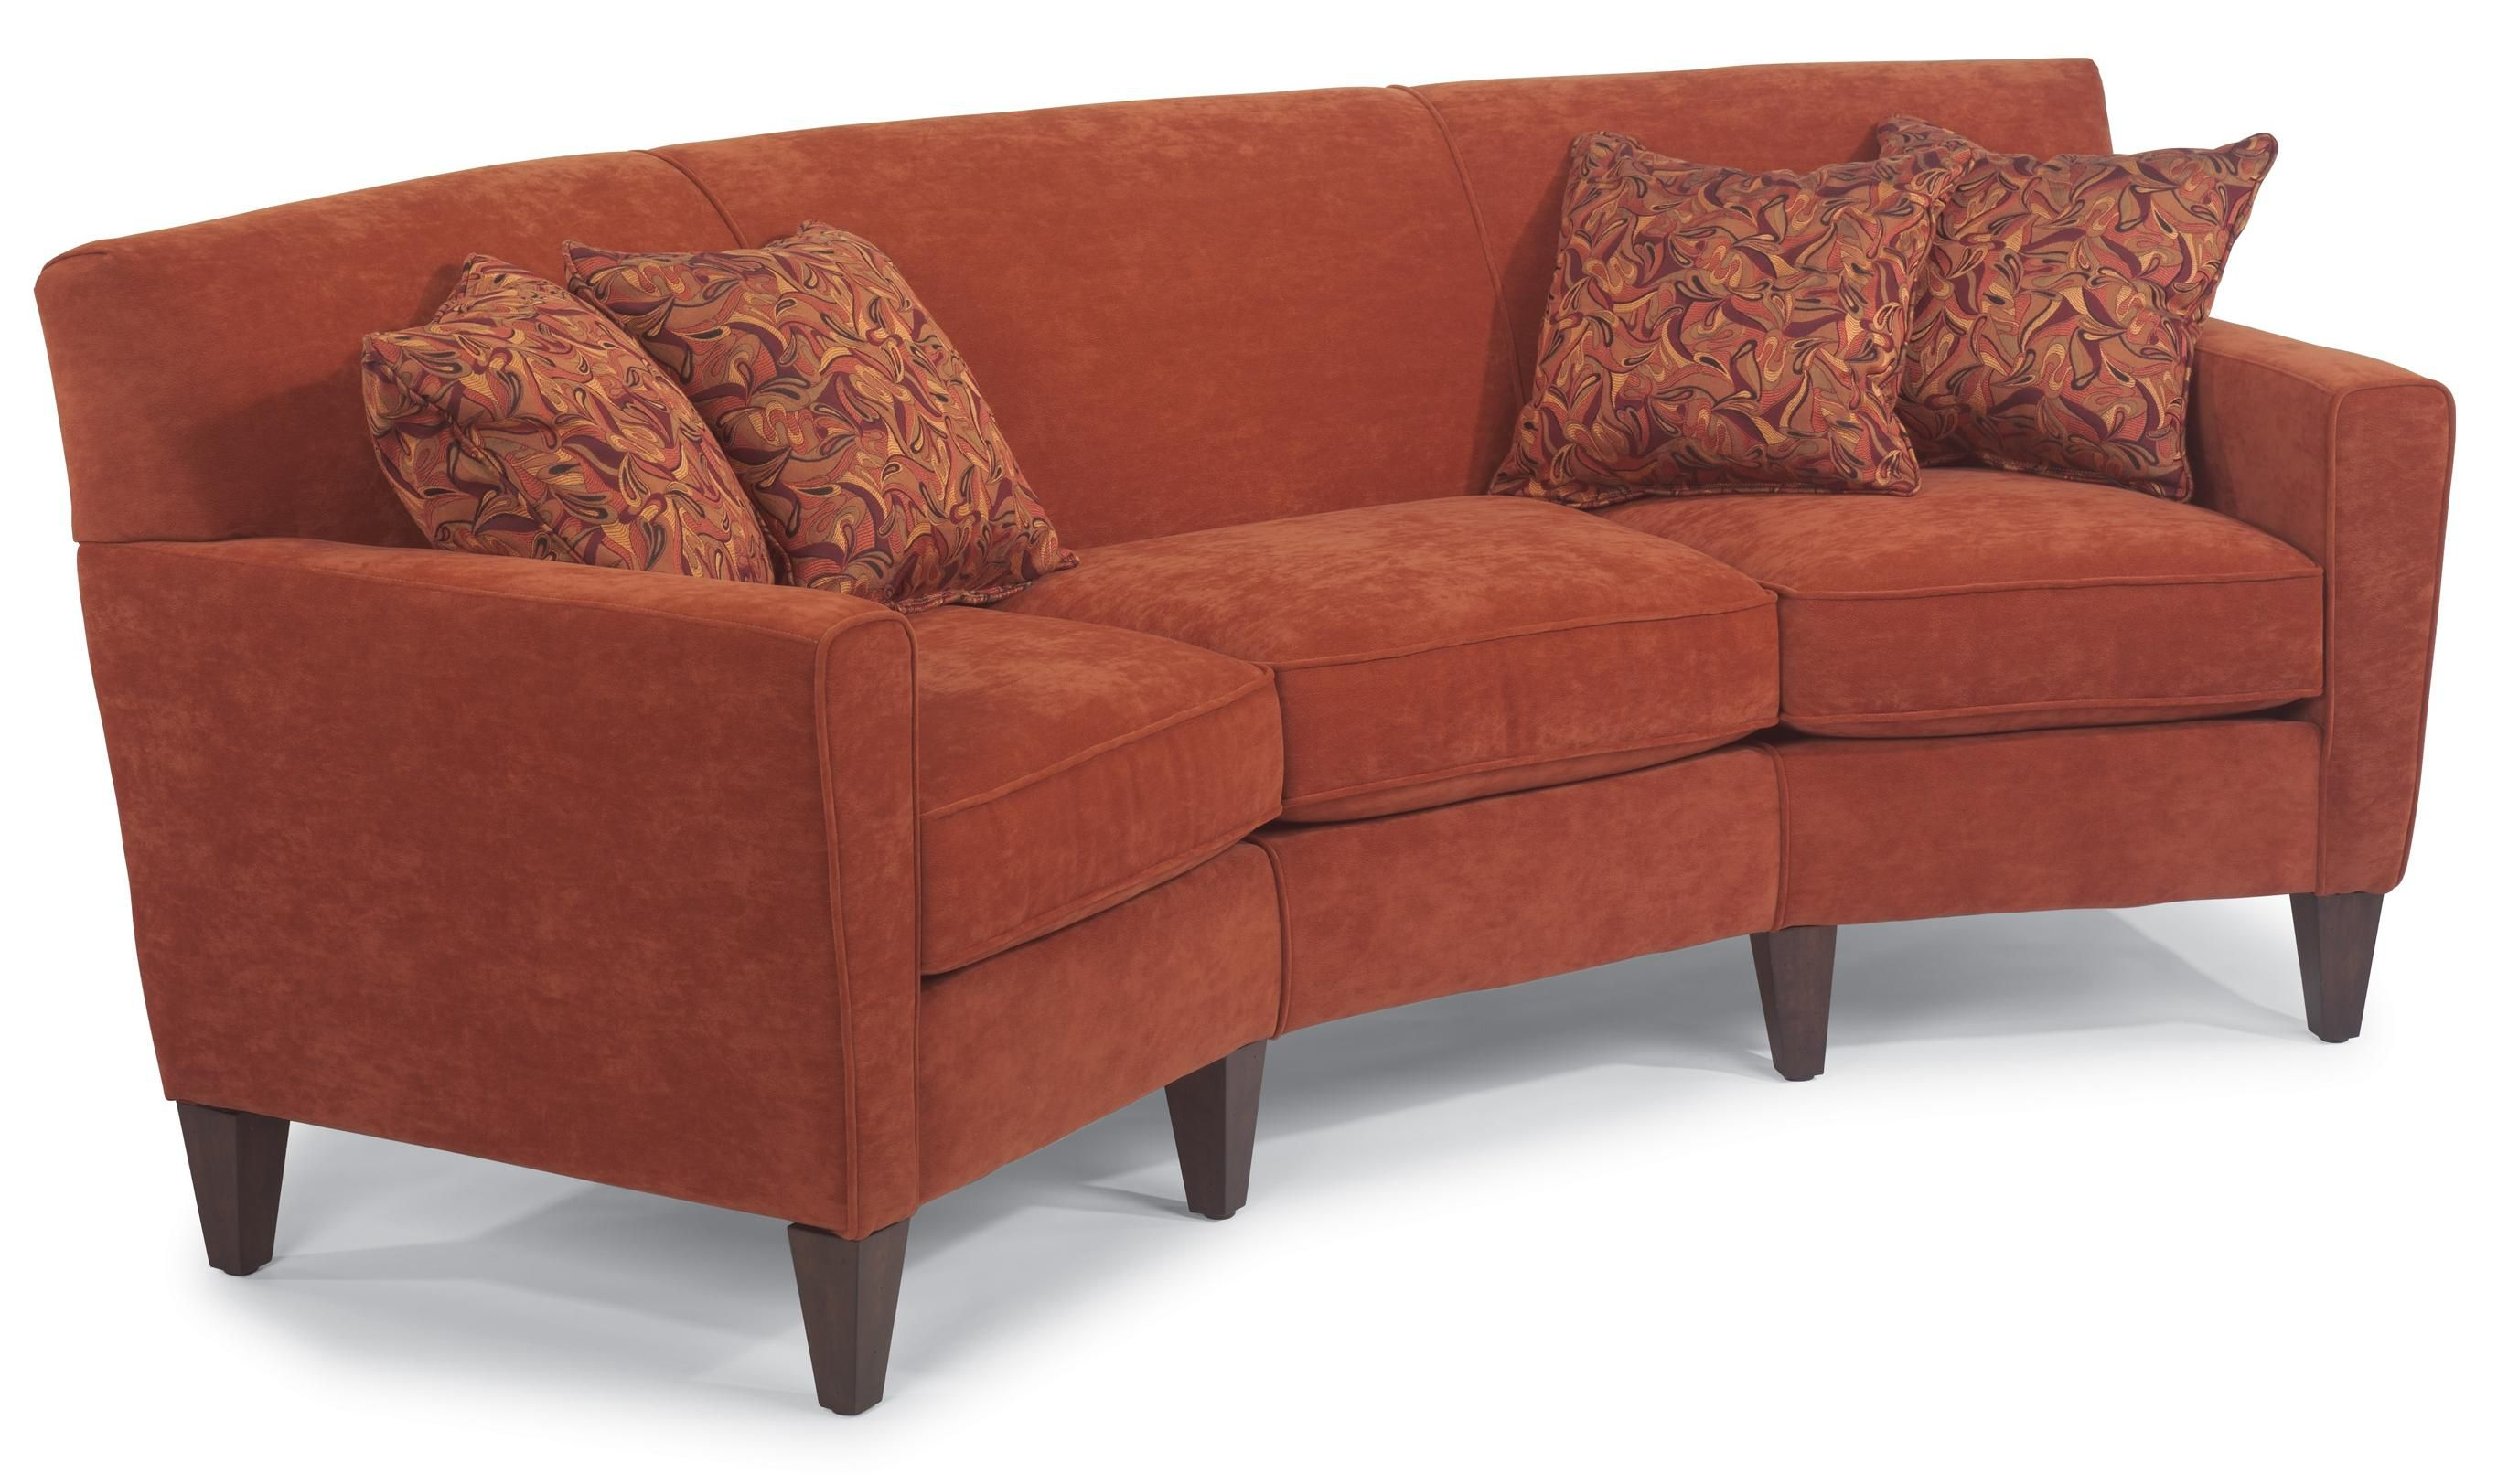 Leather Sofa Nova Scotia In Spanish Dictionary Digby Contemporary Conversation By Flexsteel Decor